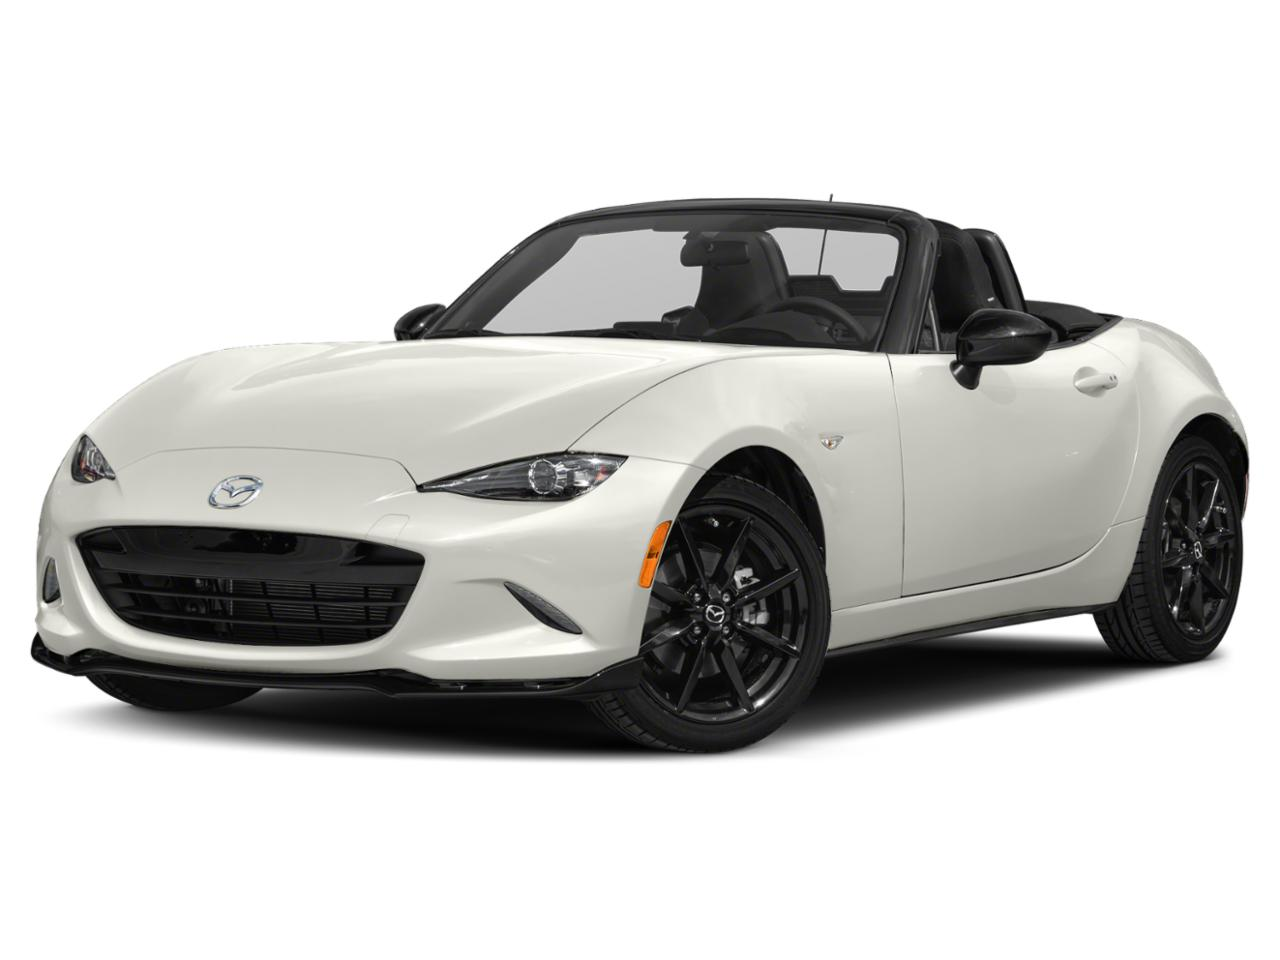 2021 Mazda MX-5 Miata Vehicle Photo in Plainfield, IL 60586